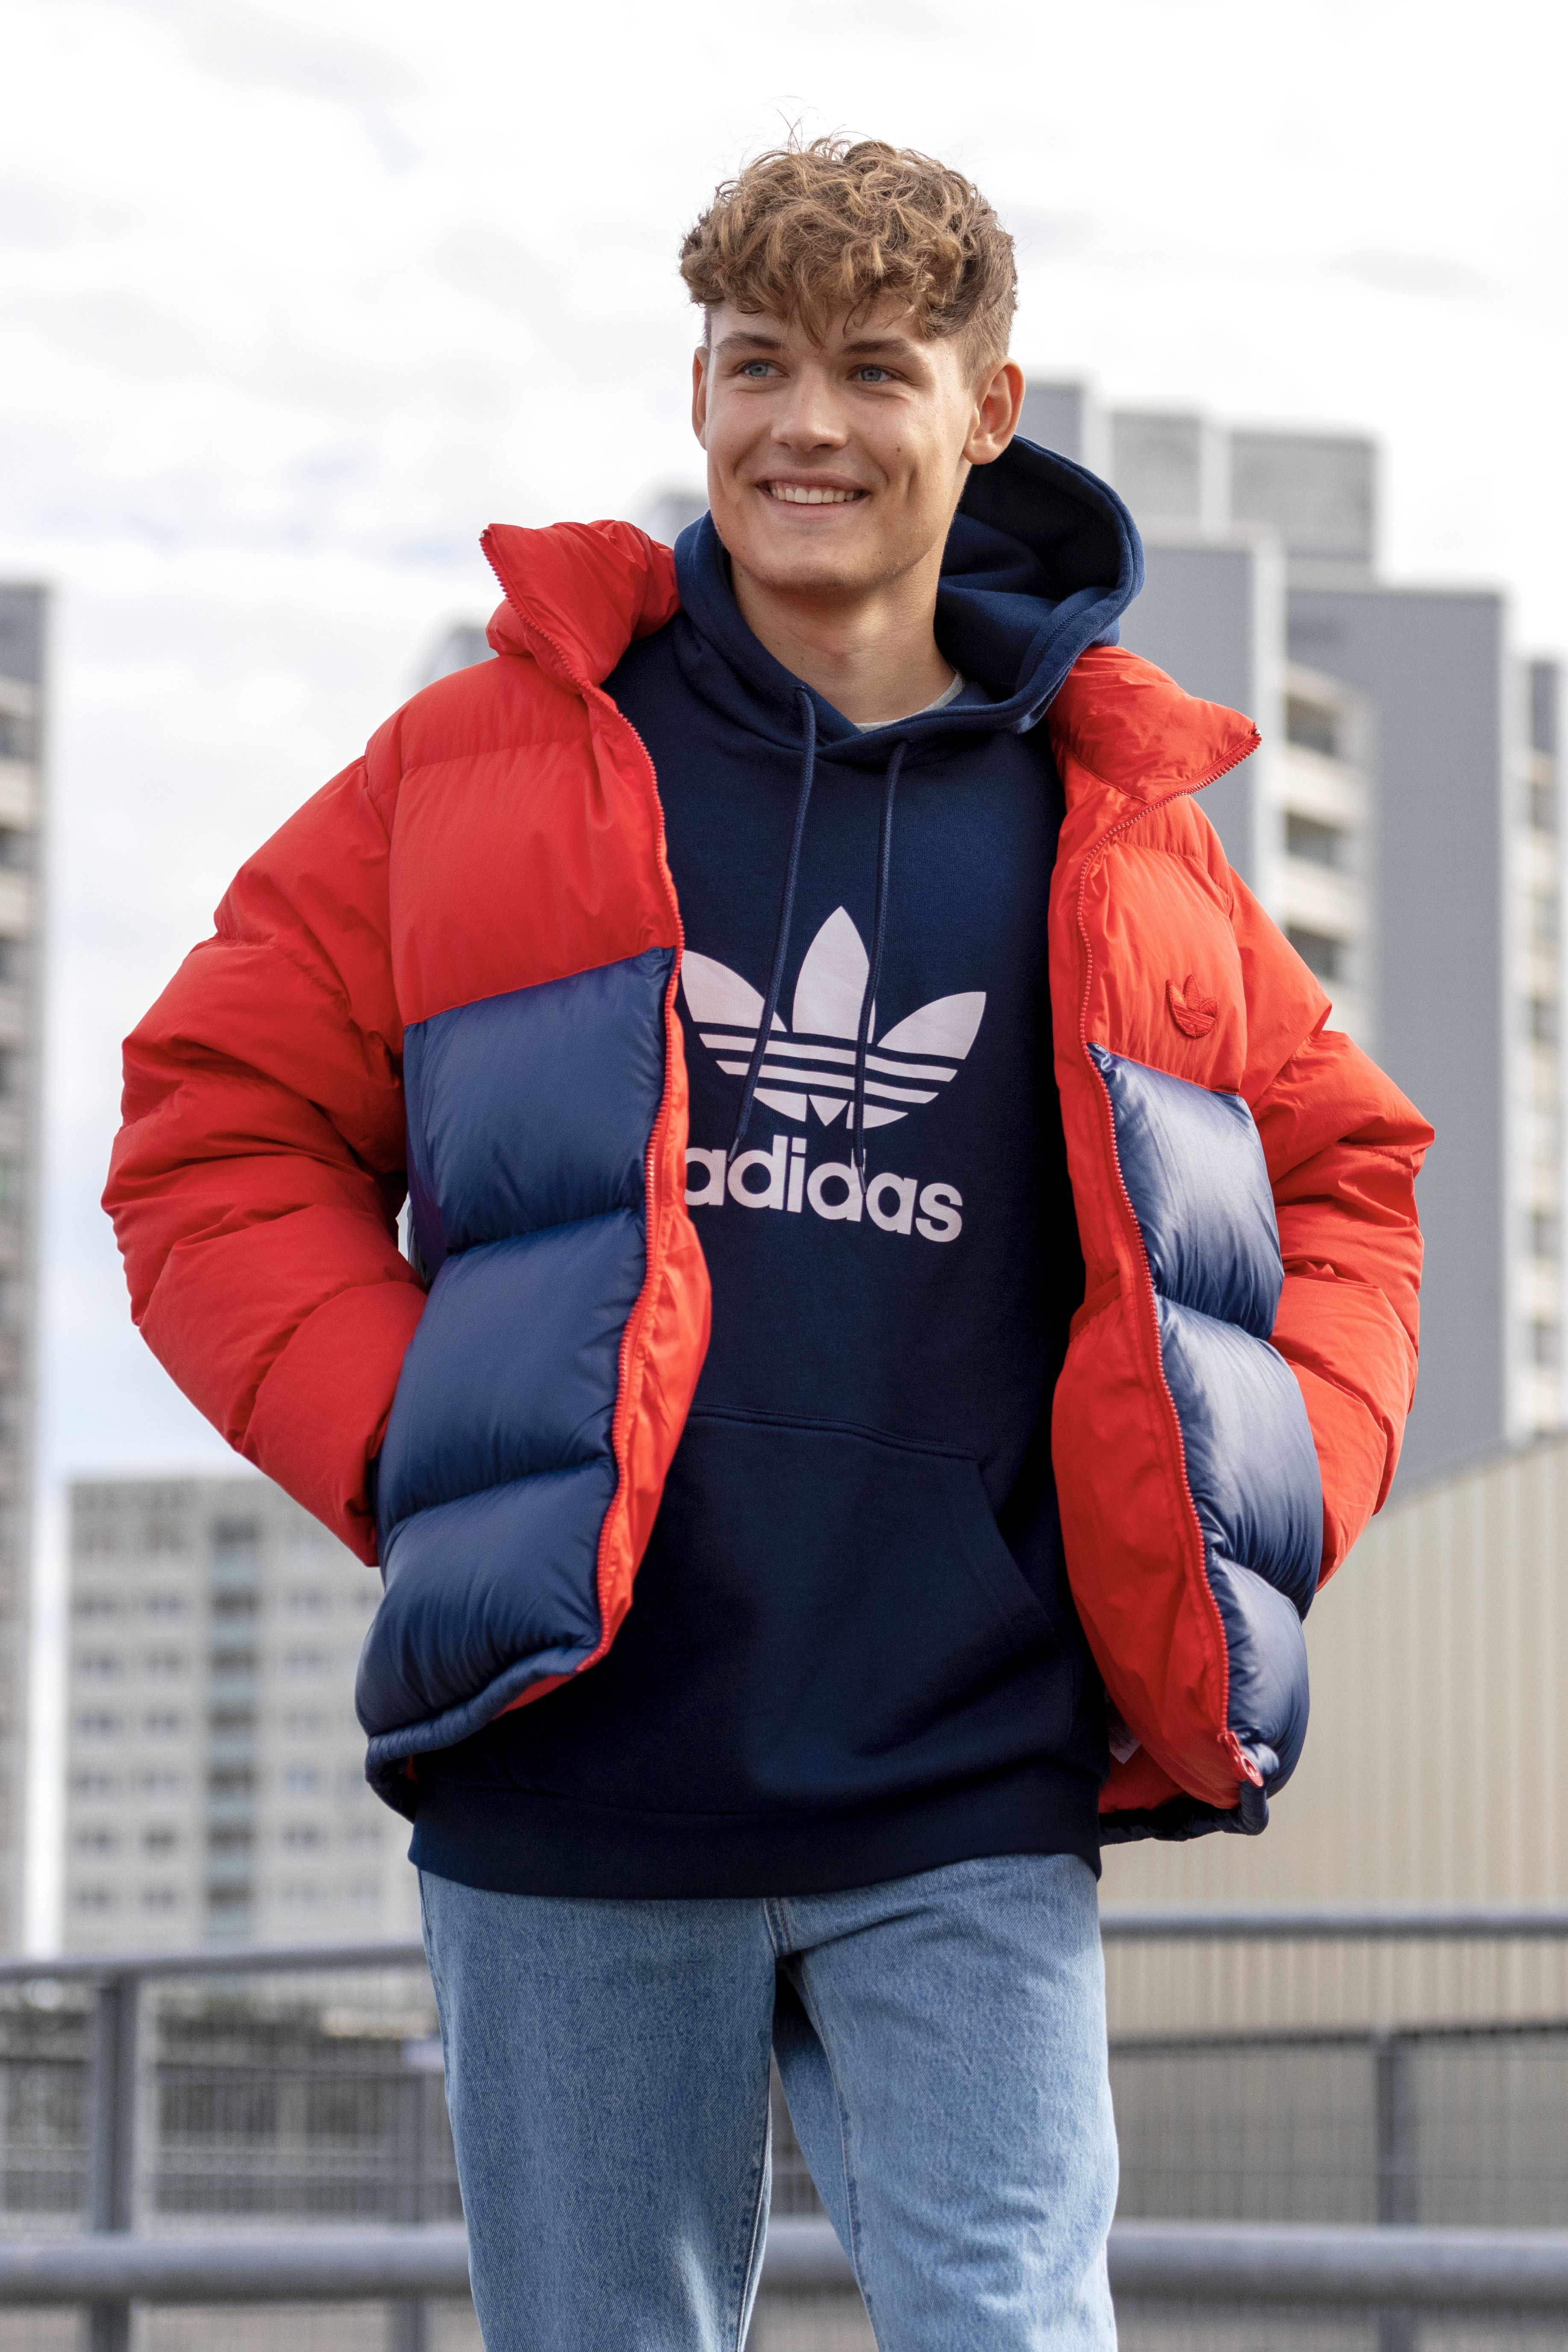 Adidas Holiday Gift Guide Men S Outerwear Mens Down Jacket Mens Cold Weather Cold Weather Outfits [ 5504 x 3669 Pixel ]